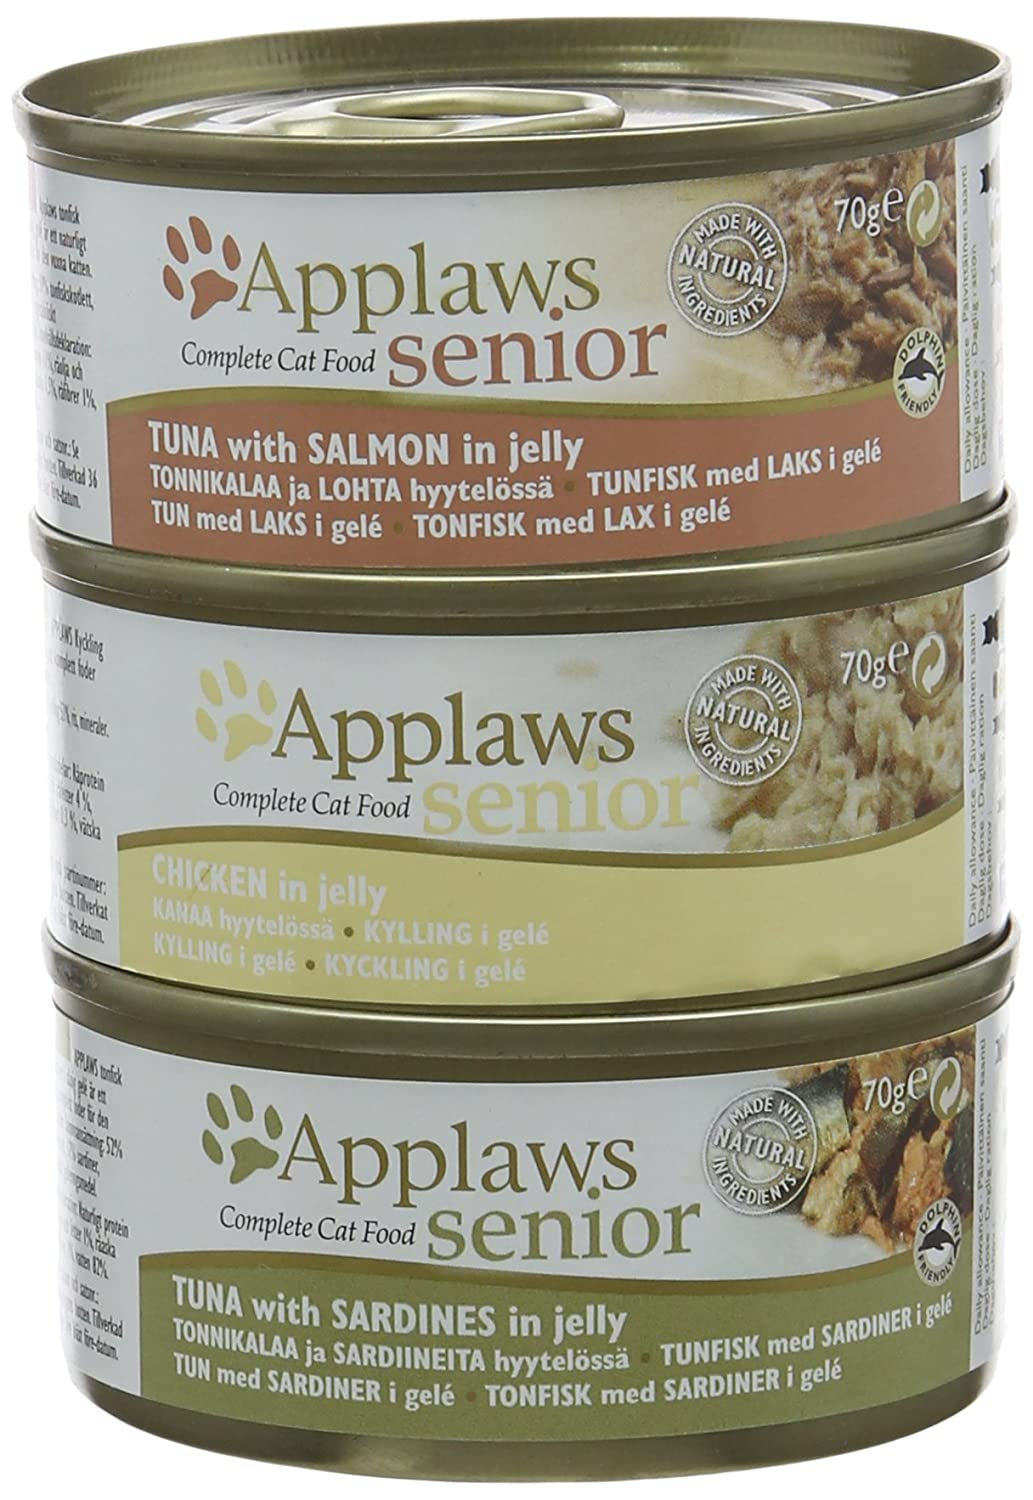 Applaws Multipack Tin for Senior Cat 6 x 70 Grams MPM Products Ltd